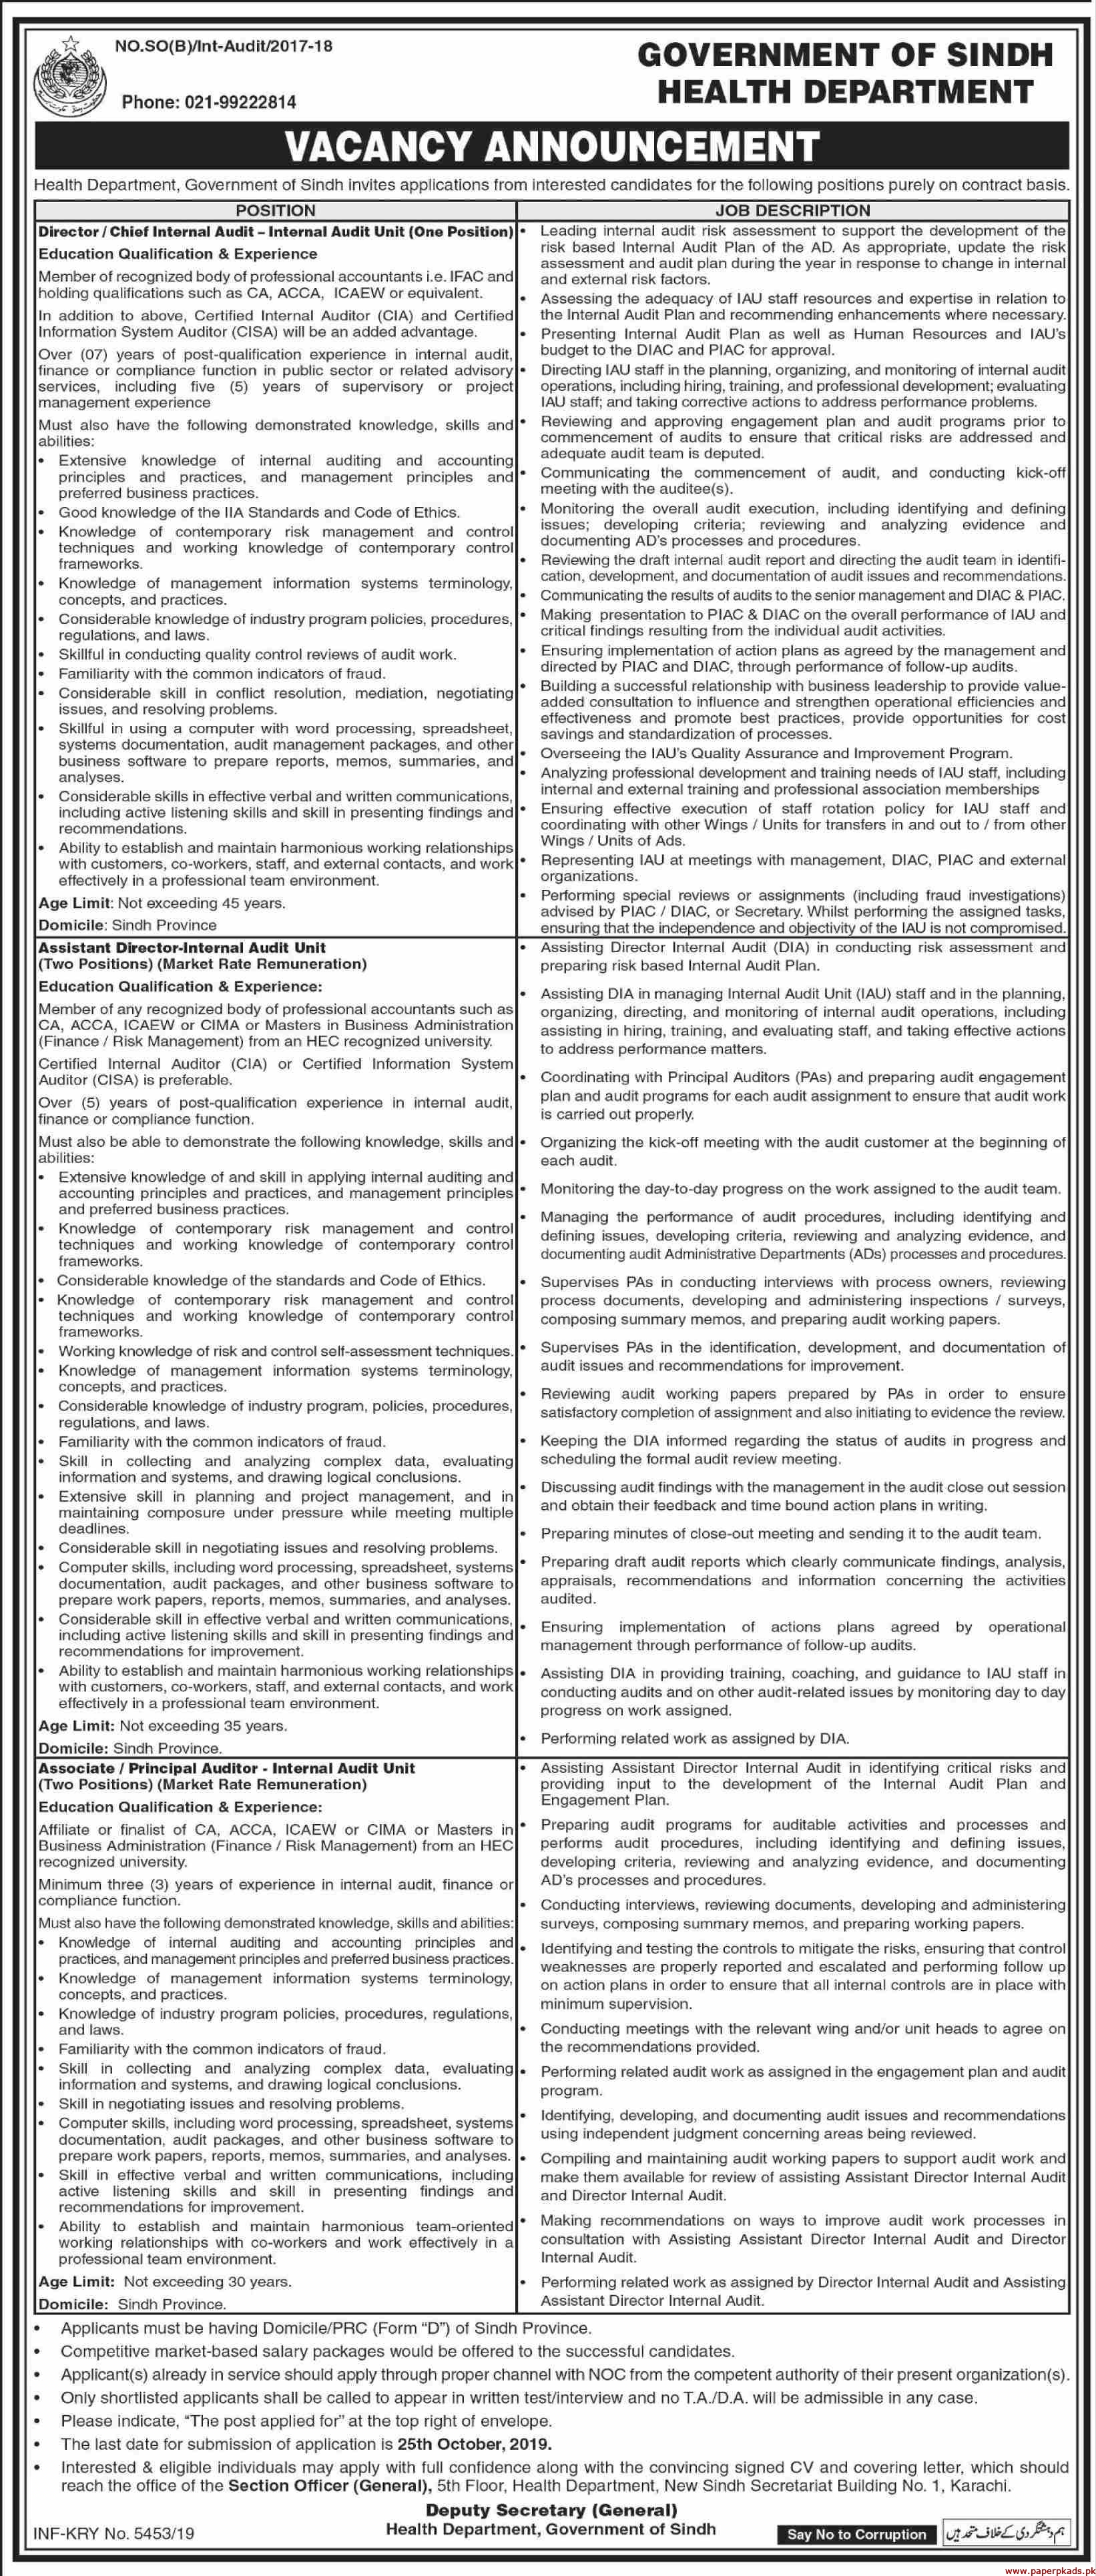 Government of Sindh Health Department Jobs 2019 Latest